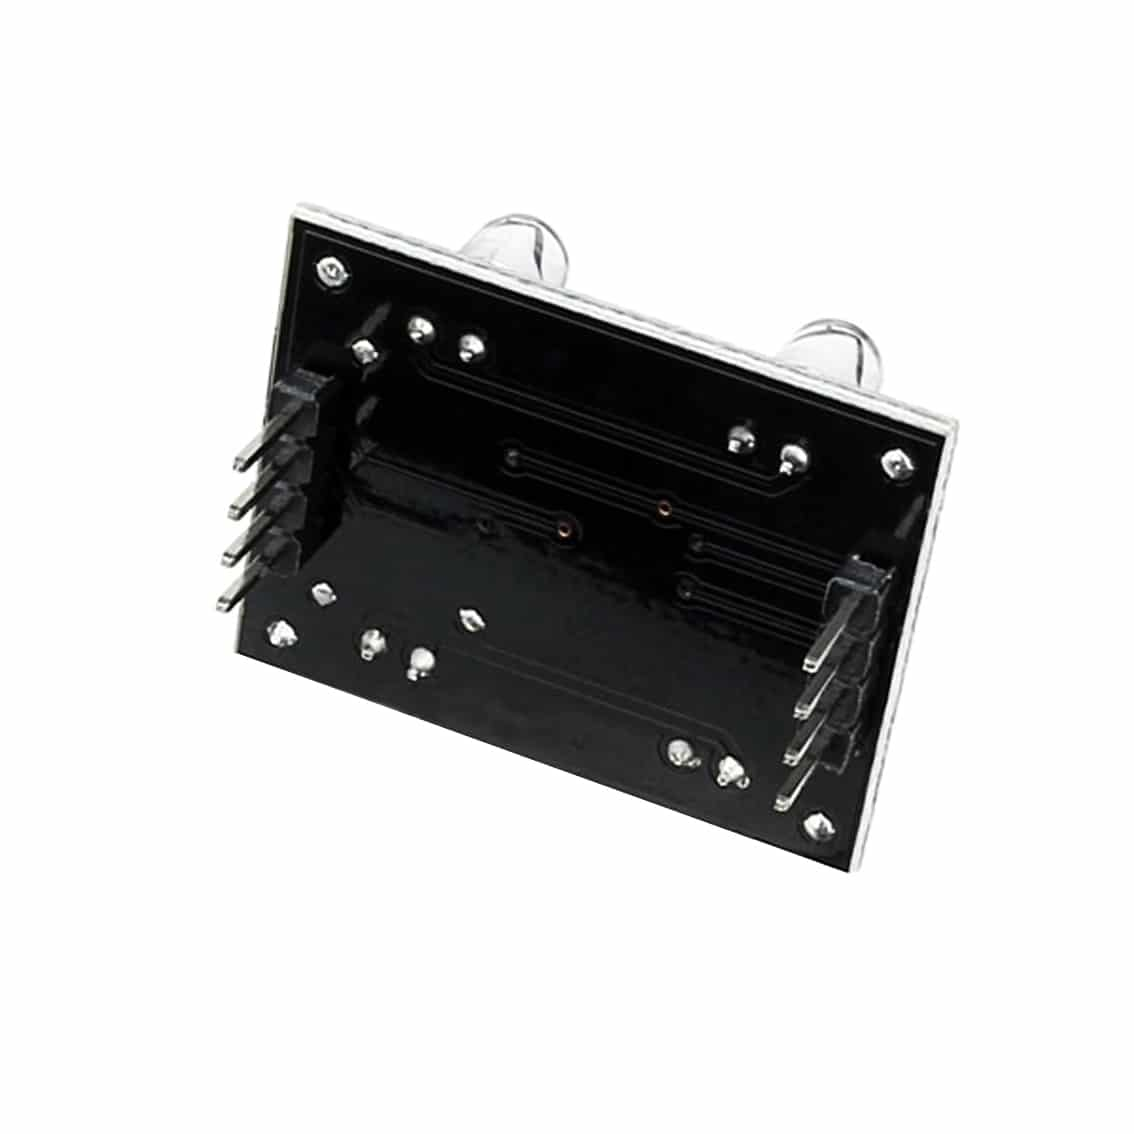 Tcs3200 Colour Sensor Module Phipps Electronics The We Will Use In This Circuit Is A Color